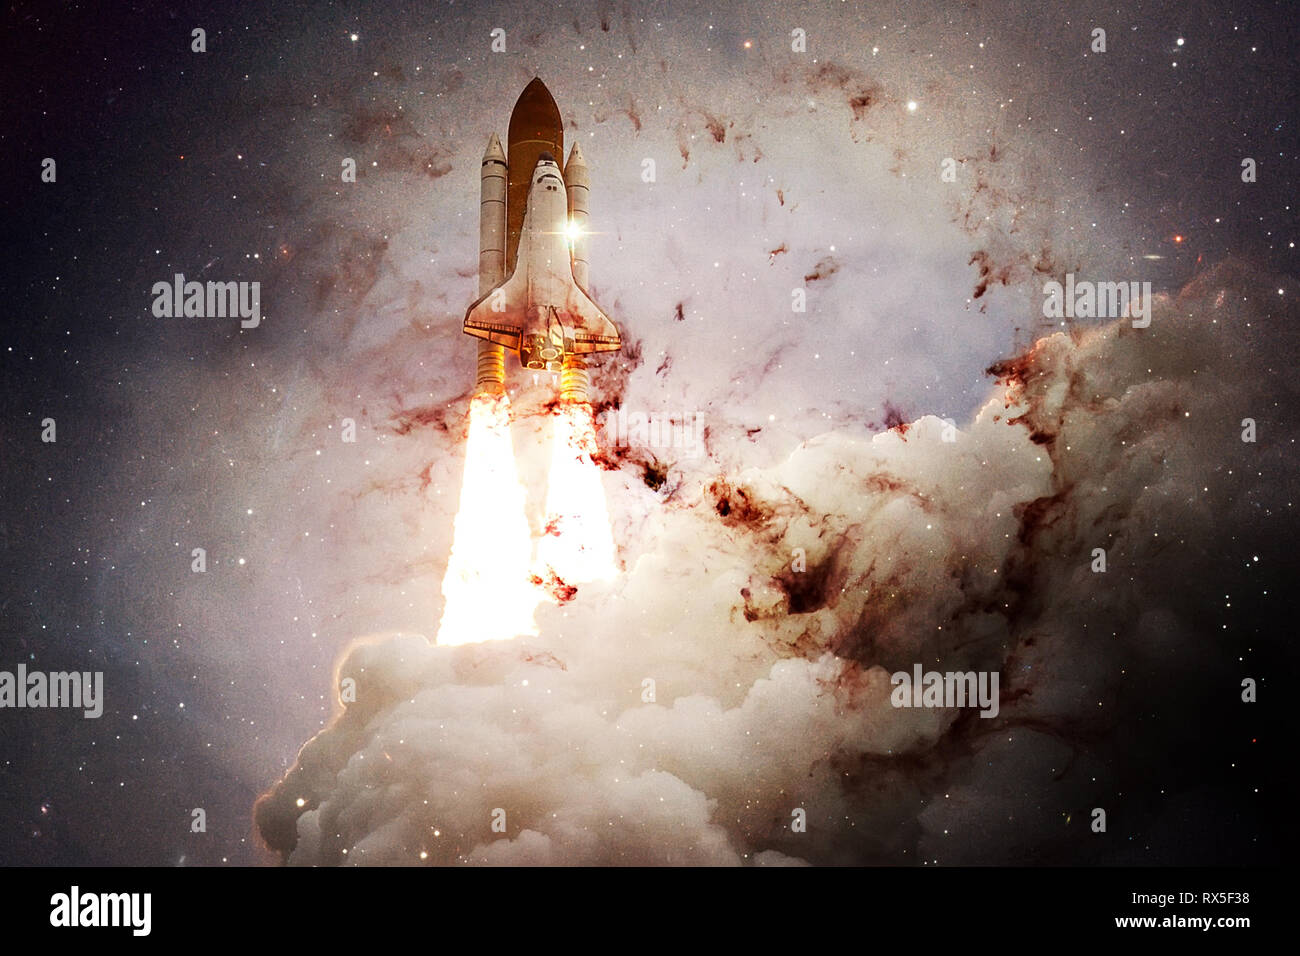 Space shuttle taking off on a mission. Deep space. Beauty of endless universe. Elements of this image furnished by NASA - Stock Image